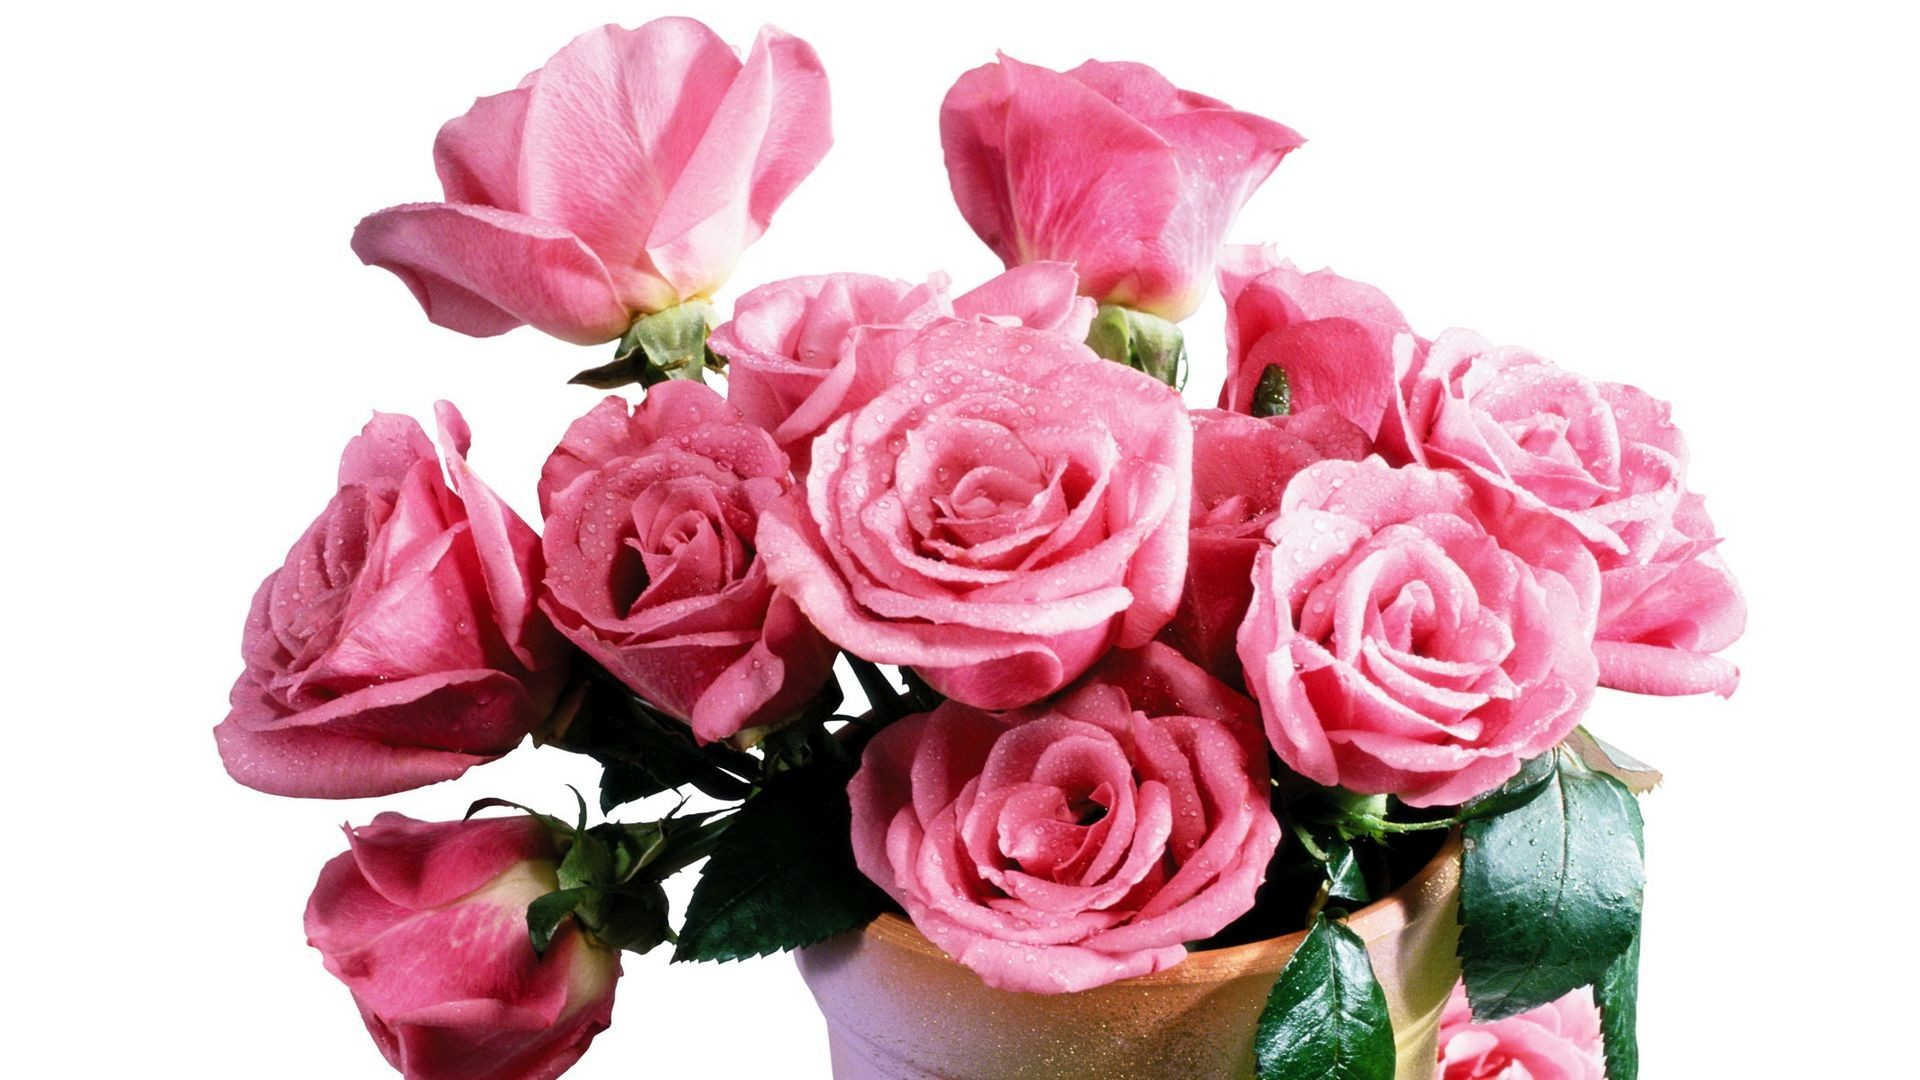 Women's Day Roses free image